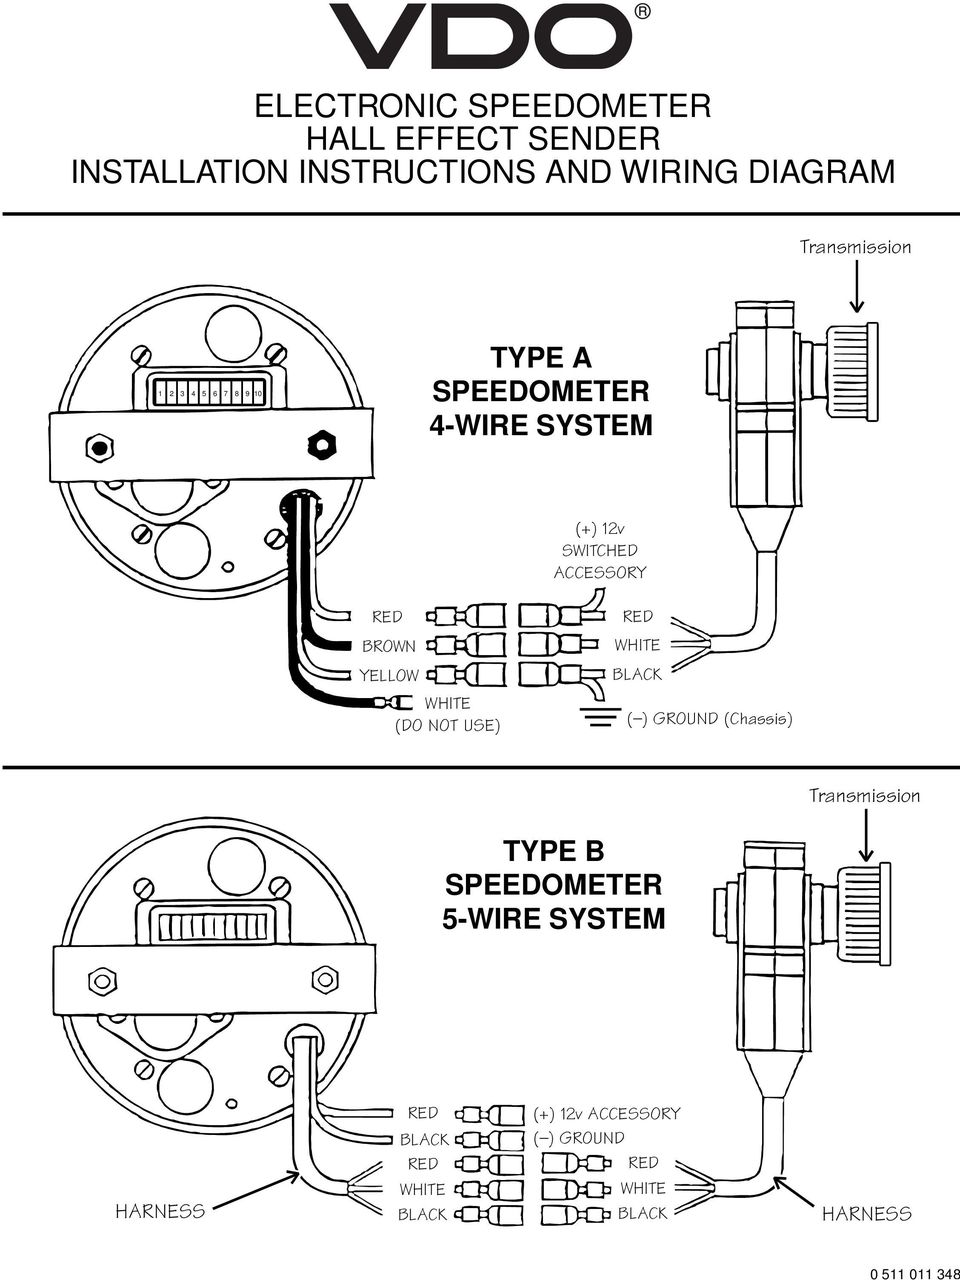 Digital Sdometer Wiring Diagram | #1 Wiring Diagram Source on